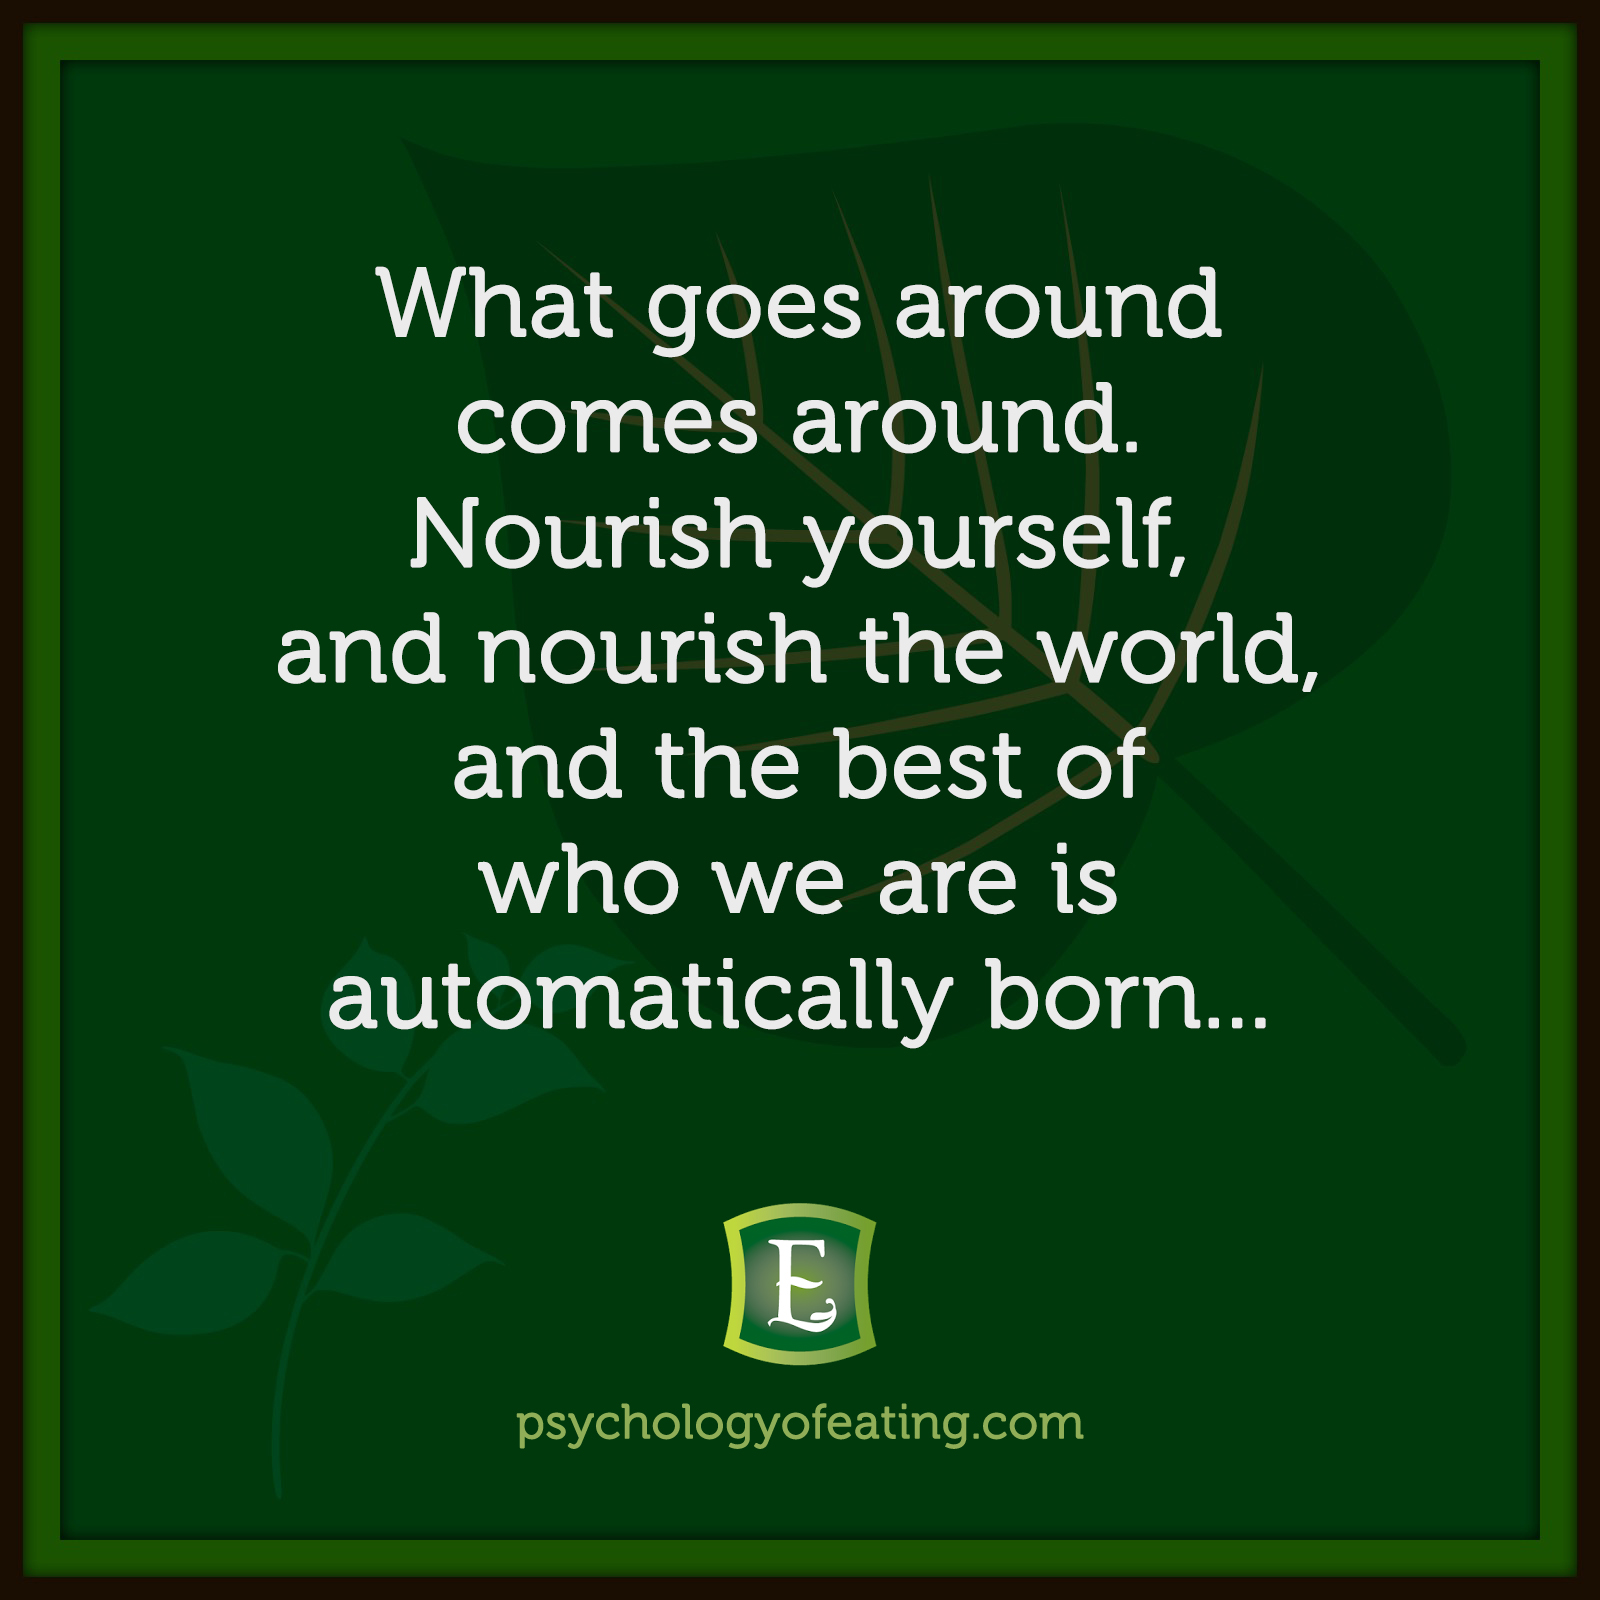 What goes around comes around. Nourish yourself, and nourish the world, and the best of who we are is automatically born…   Marc David #health #nutrition #eatingpsychology #IPE